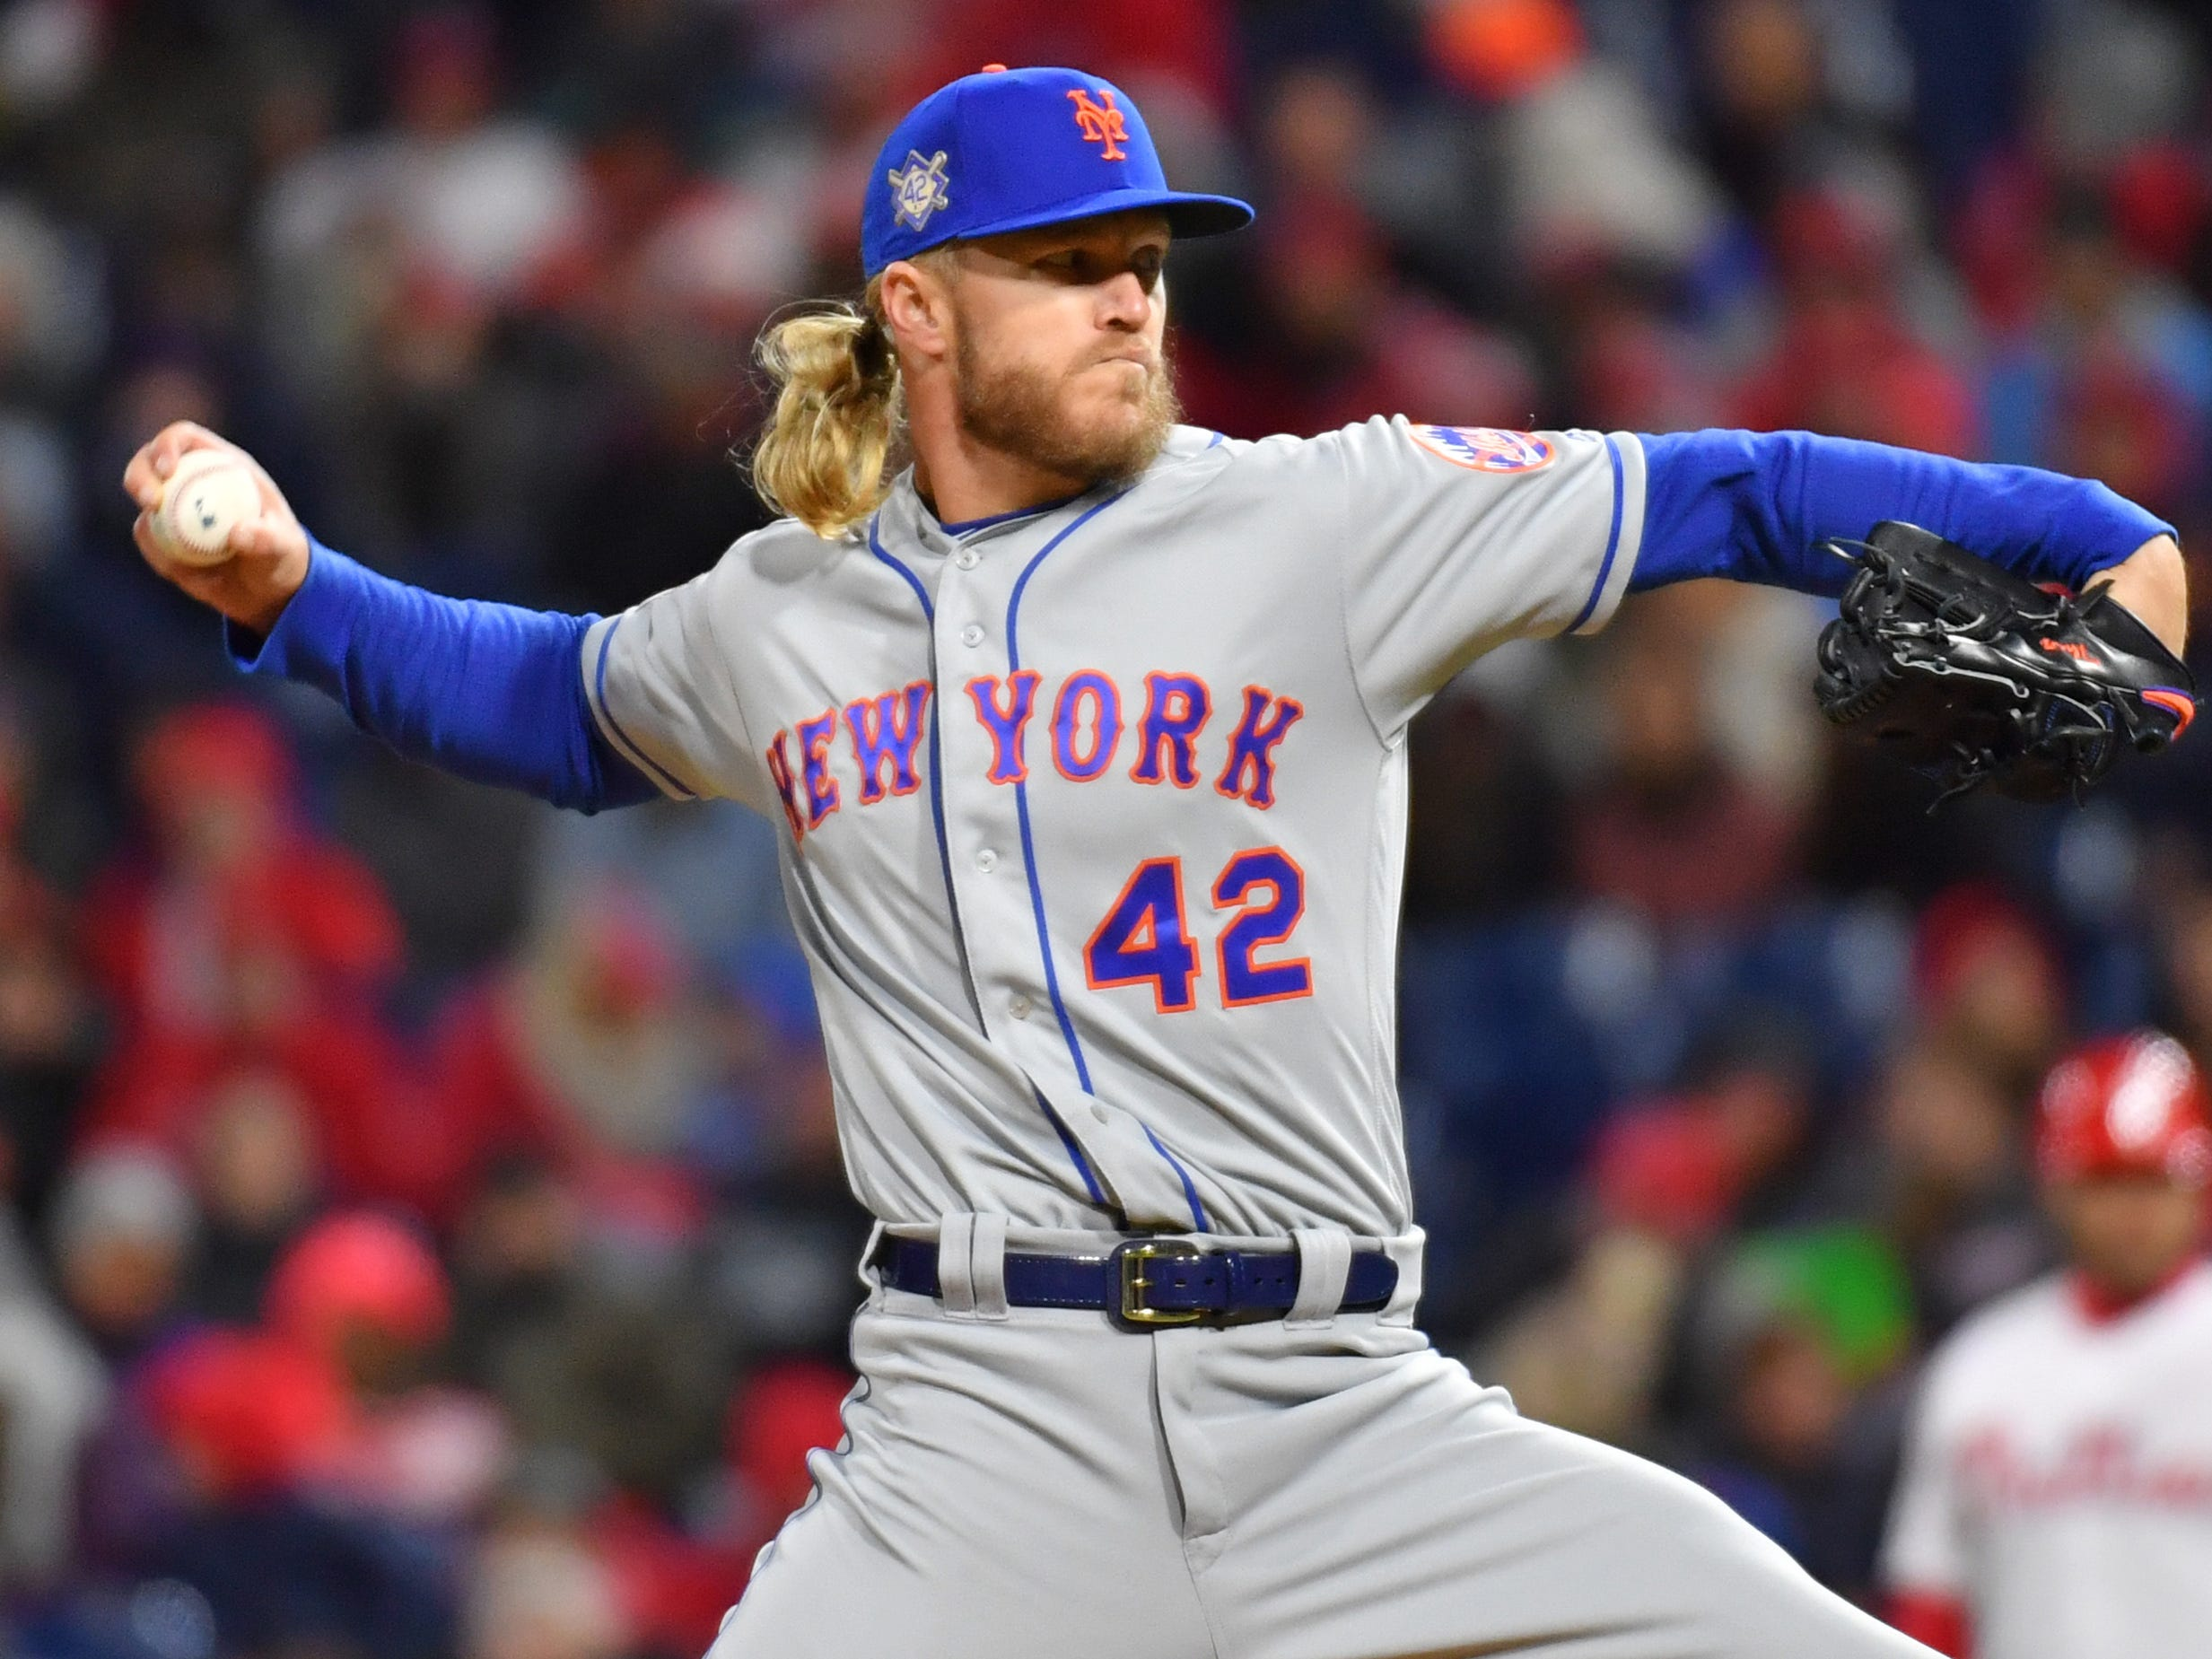 Mets starting pitcher Noah Syndergaard, wearing No. 42, throws a pitch.